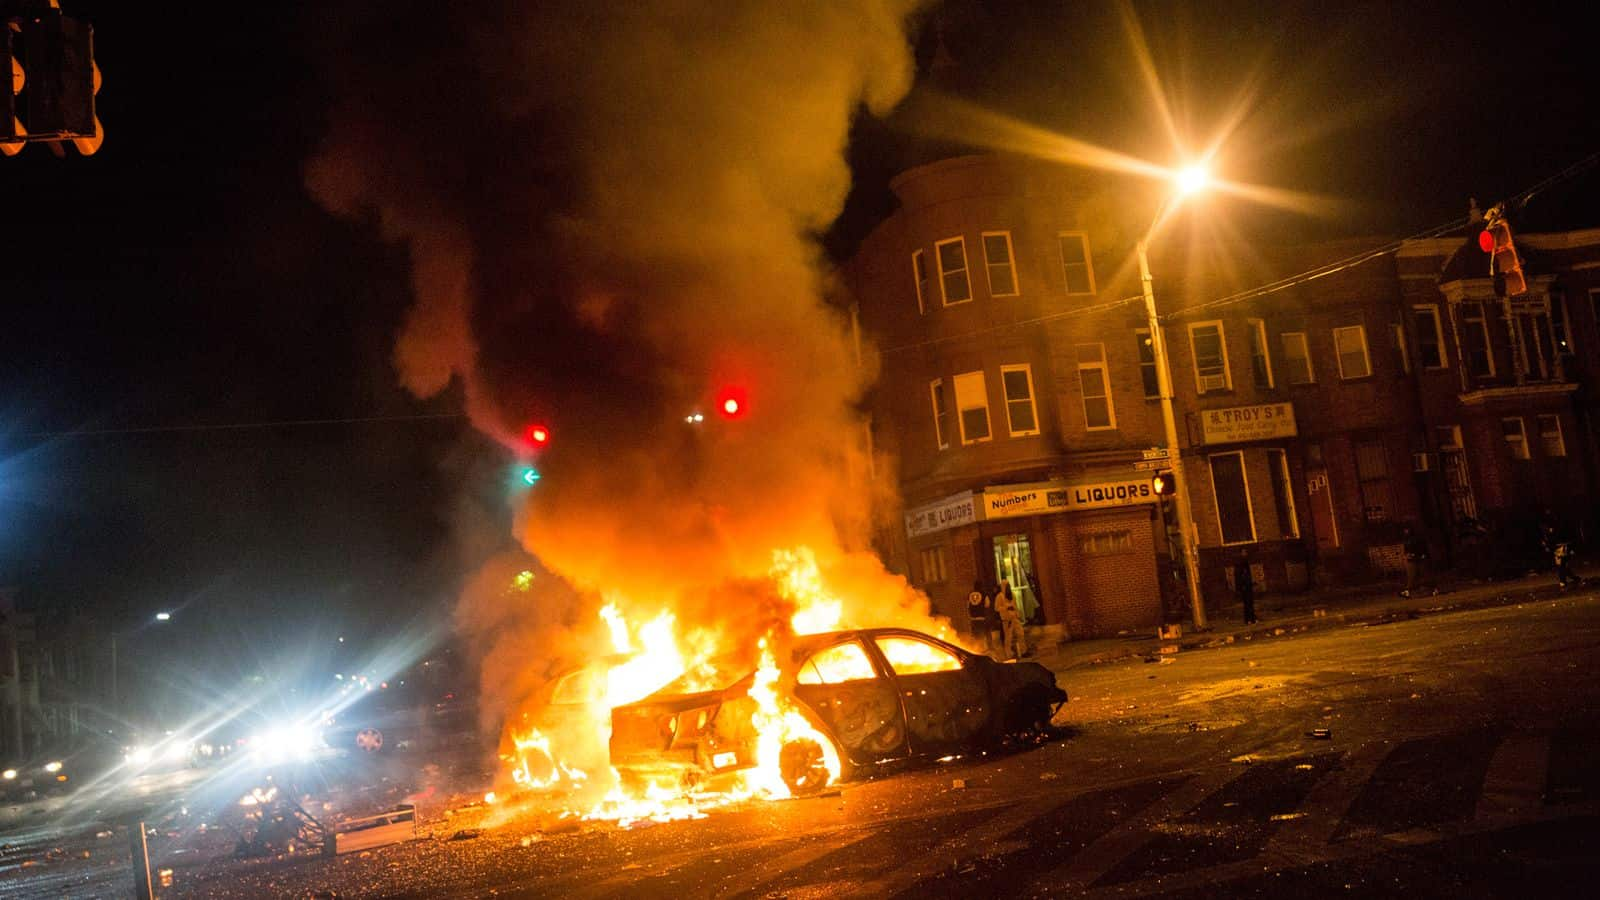 DEPOSIT AND DESTRUCTION IN A RIOT